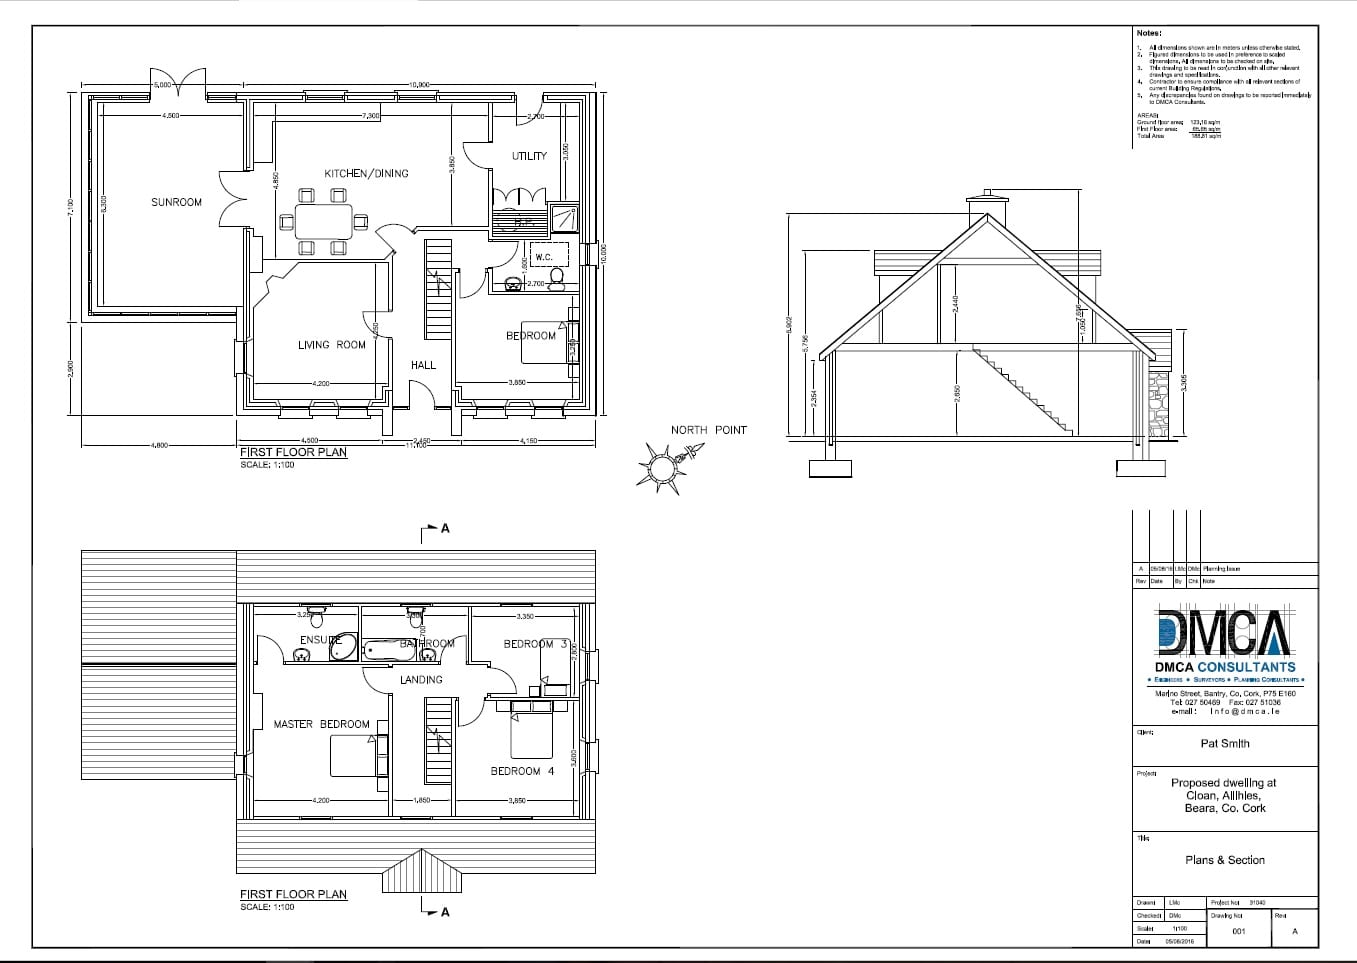 Floor Plans & Section Drawing